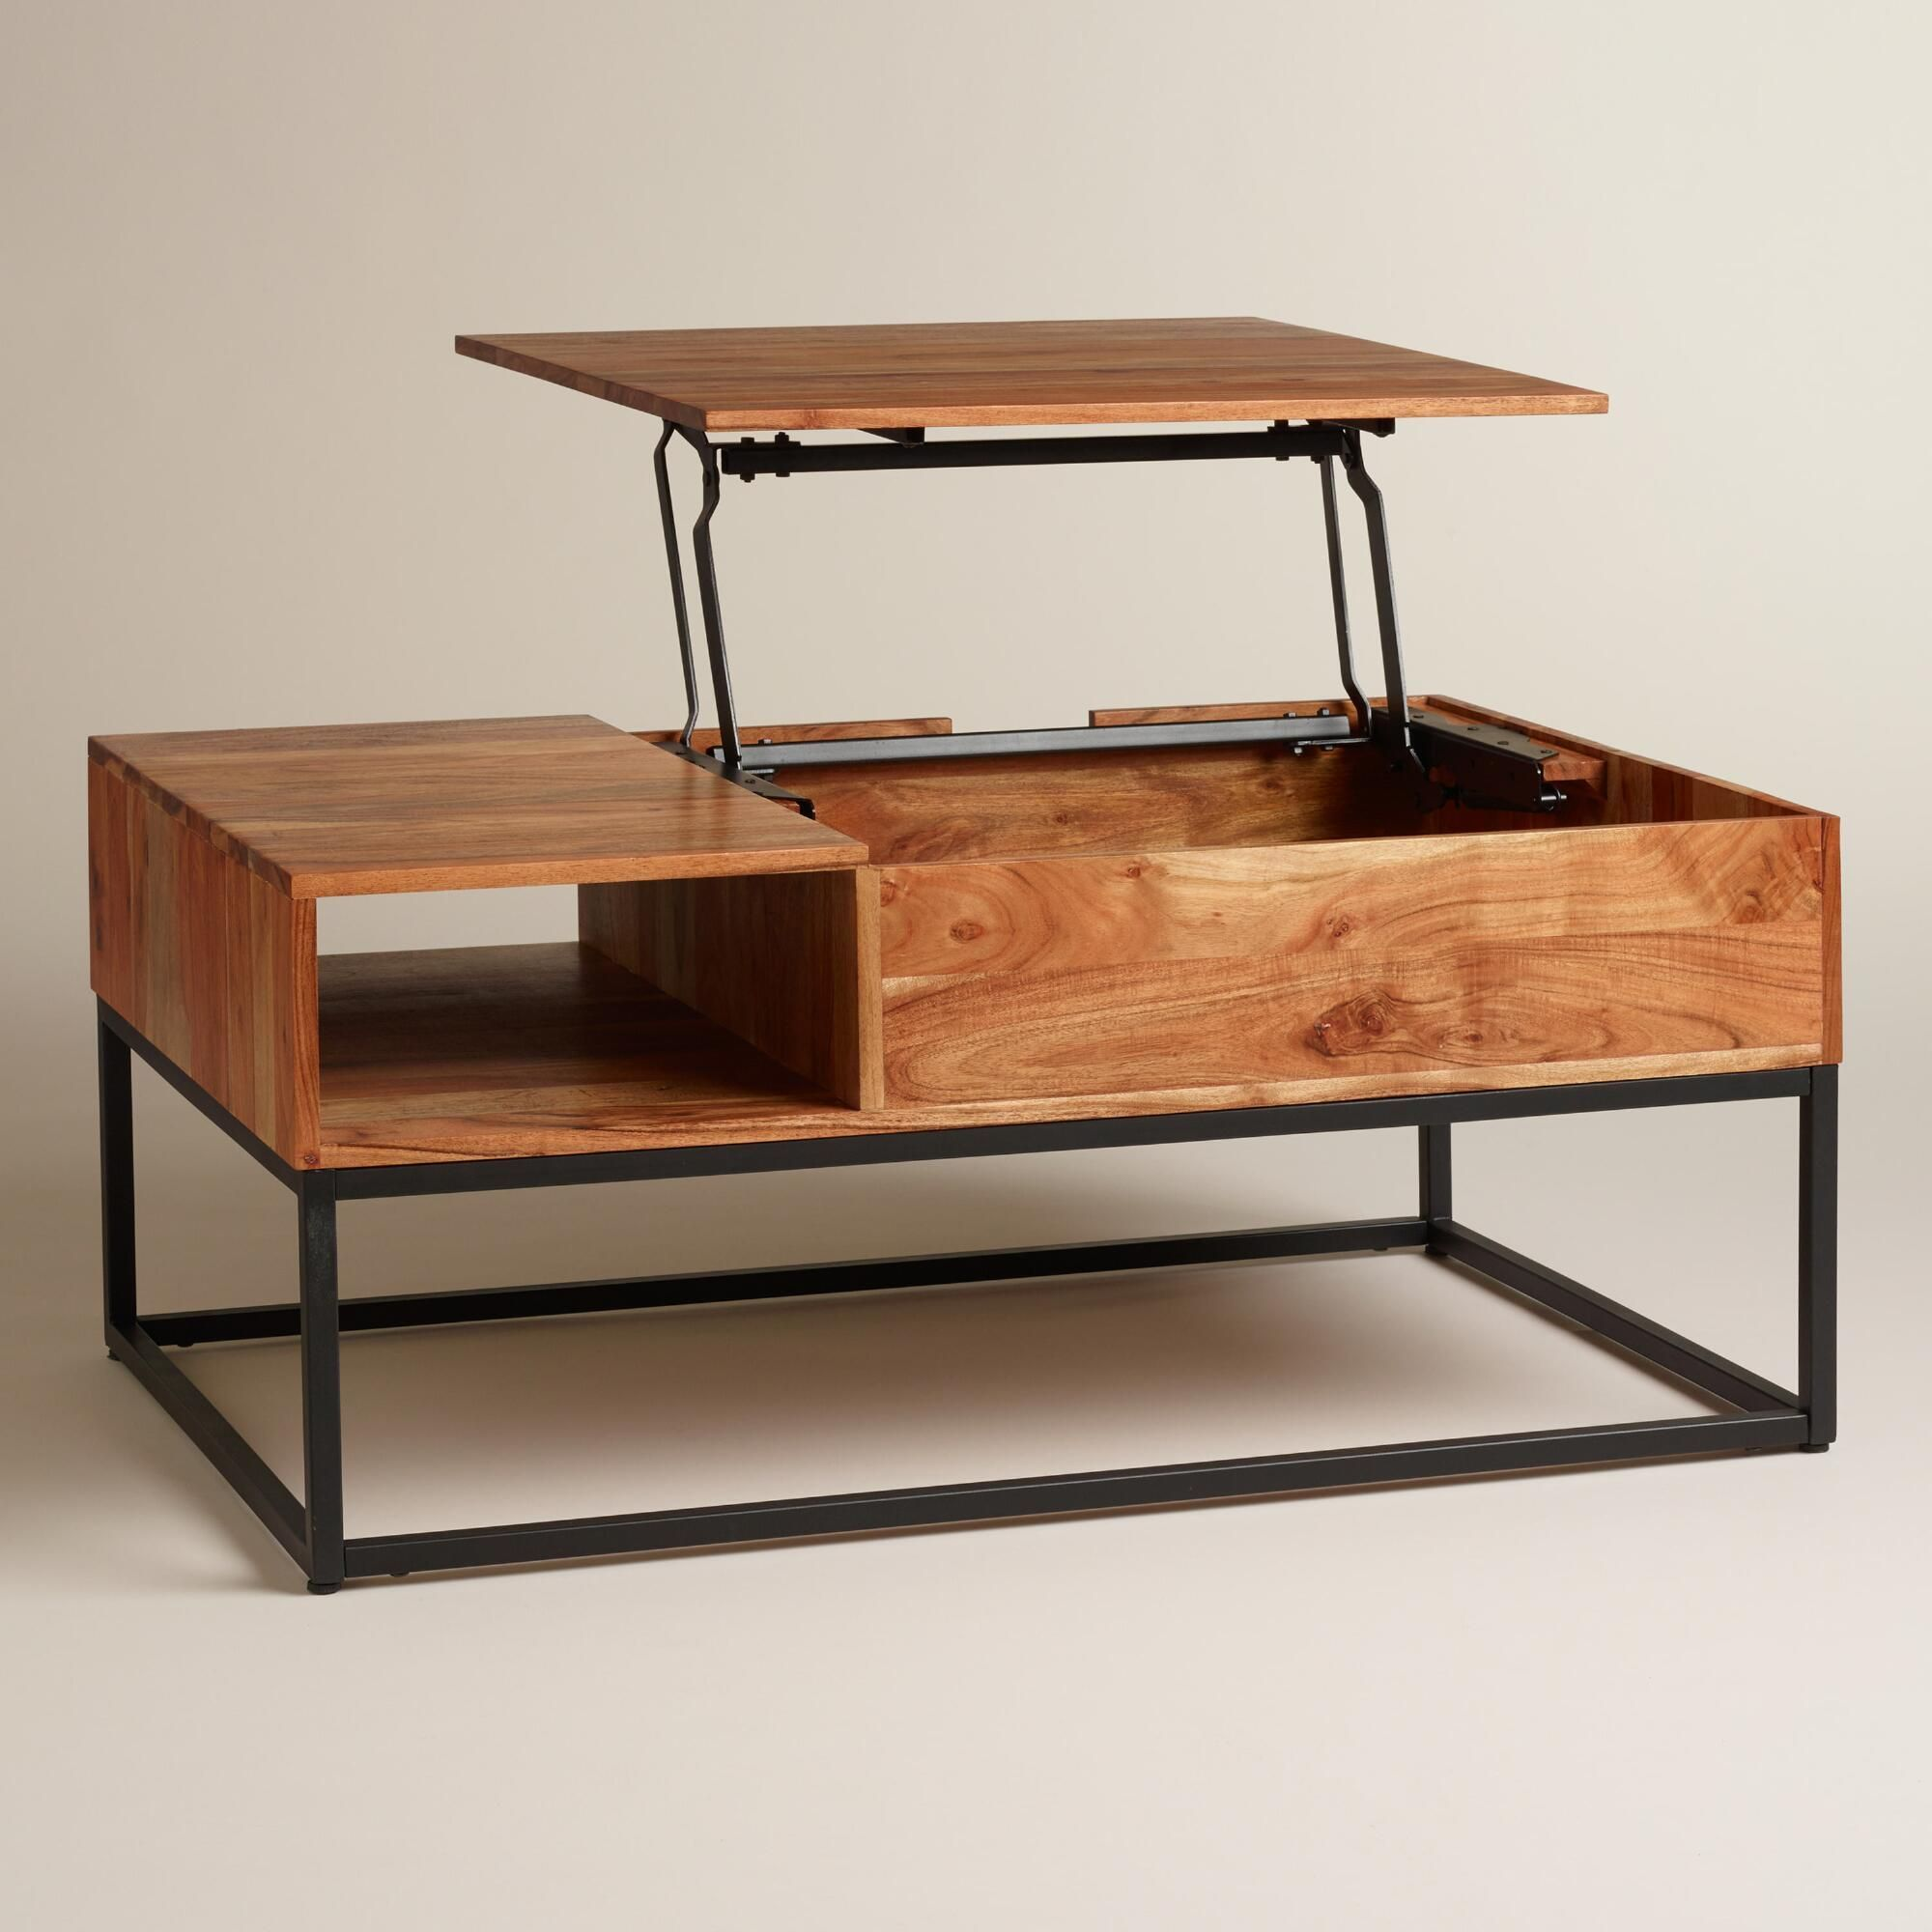 10 Coffee Tables That Open Up Images Coffee Table With Shelf